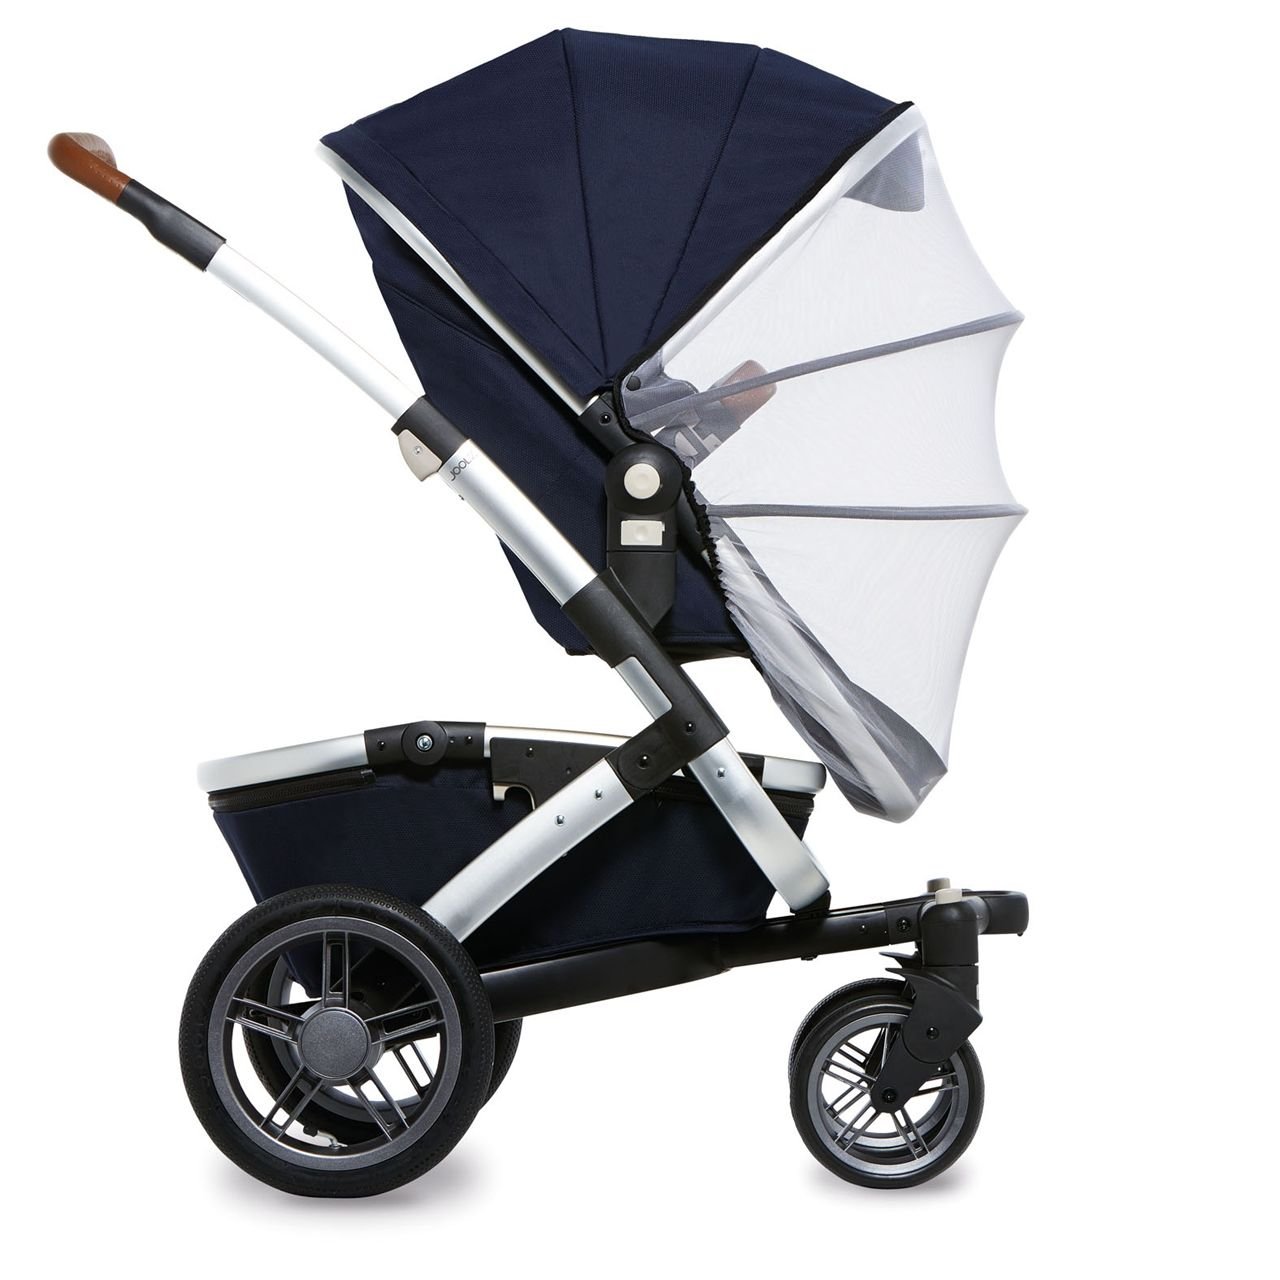 Joolz Pram Mothercare The Joolz Mosquito Net Fits The Joolz Geo Carrycot And Seat